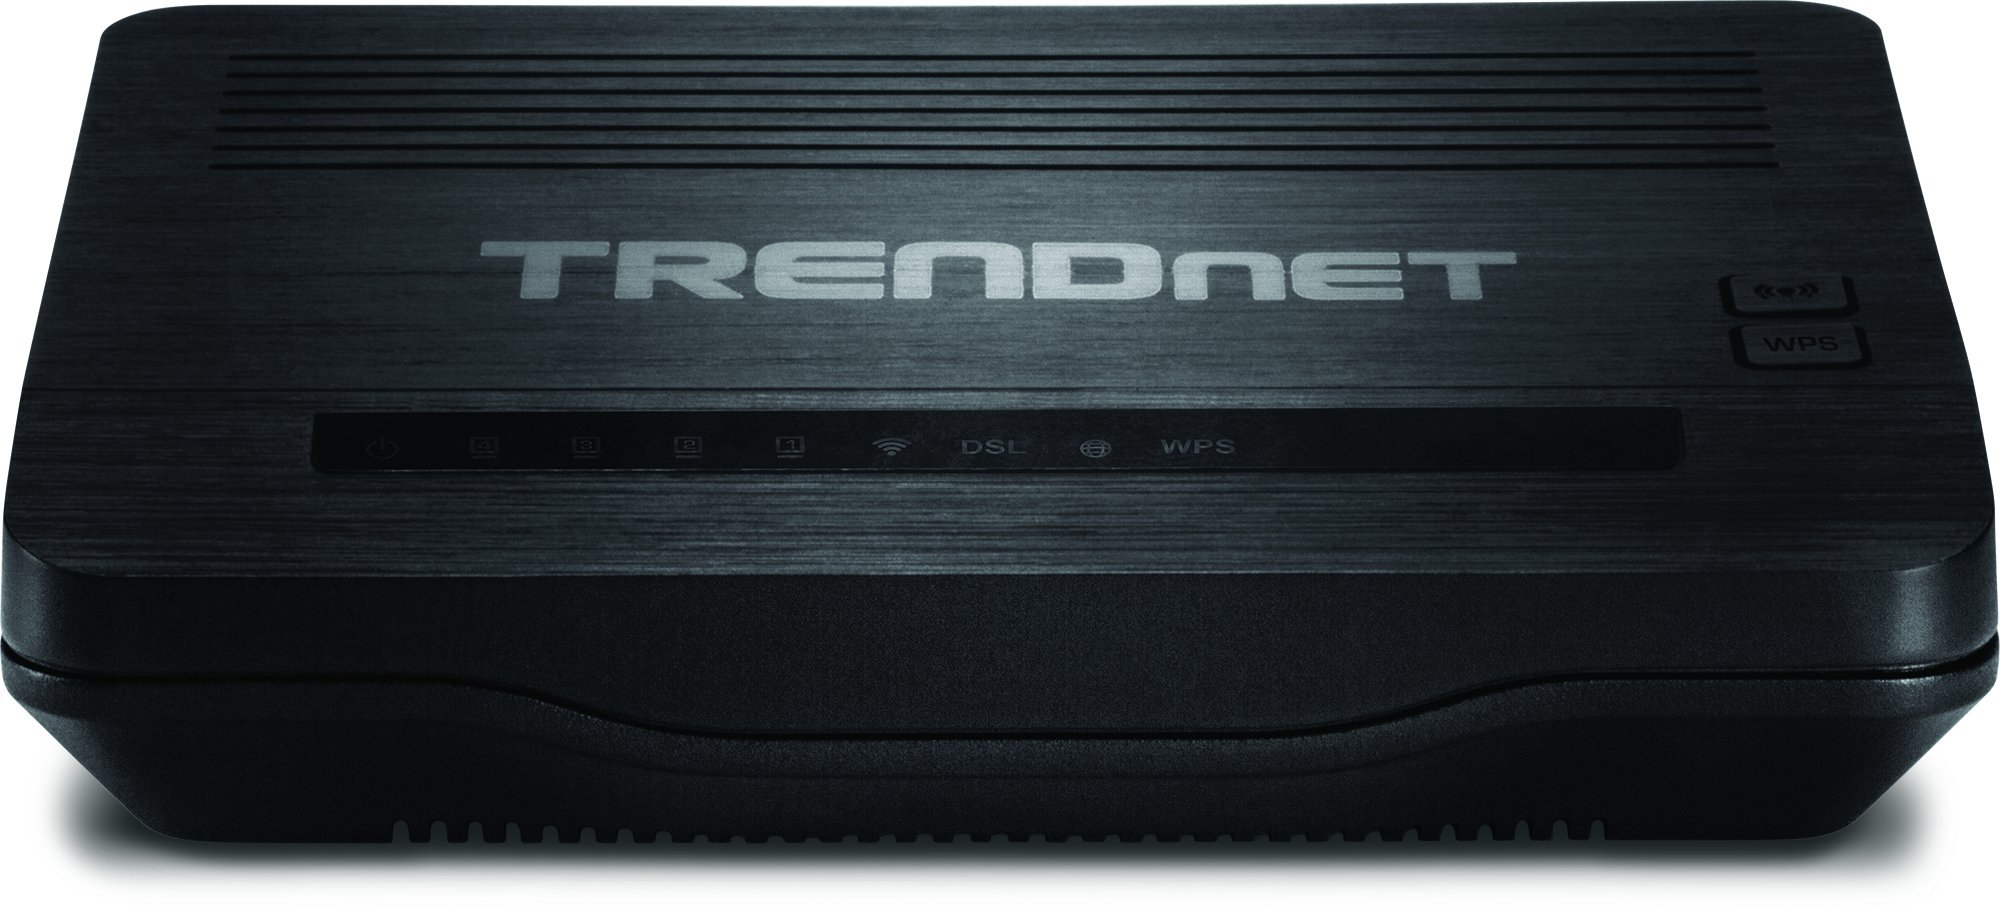 TRENDnet N150 Wireless ADSL 2+ Modem Router, Compatible with ADSL 2/2+ ISP, TEW-721BRM by TRENDnet